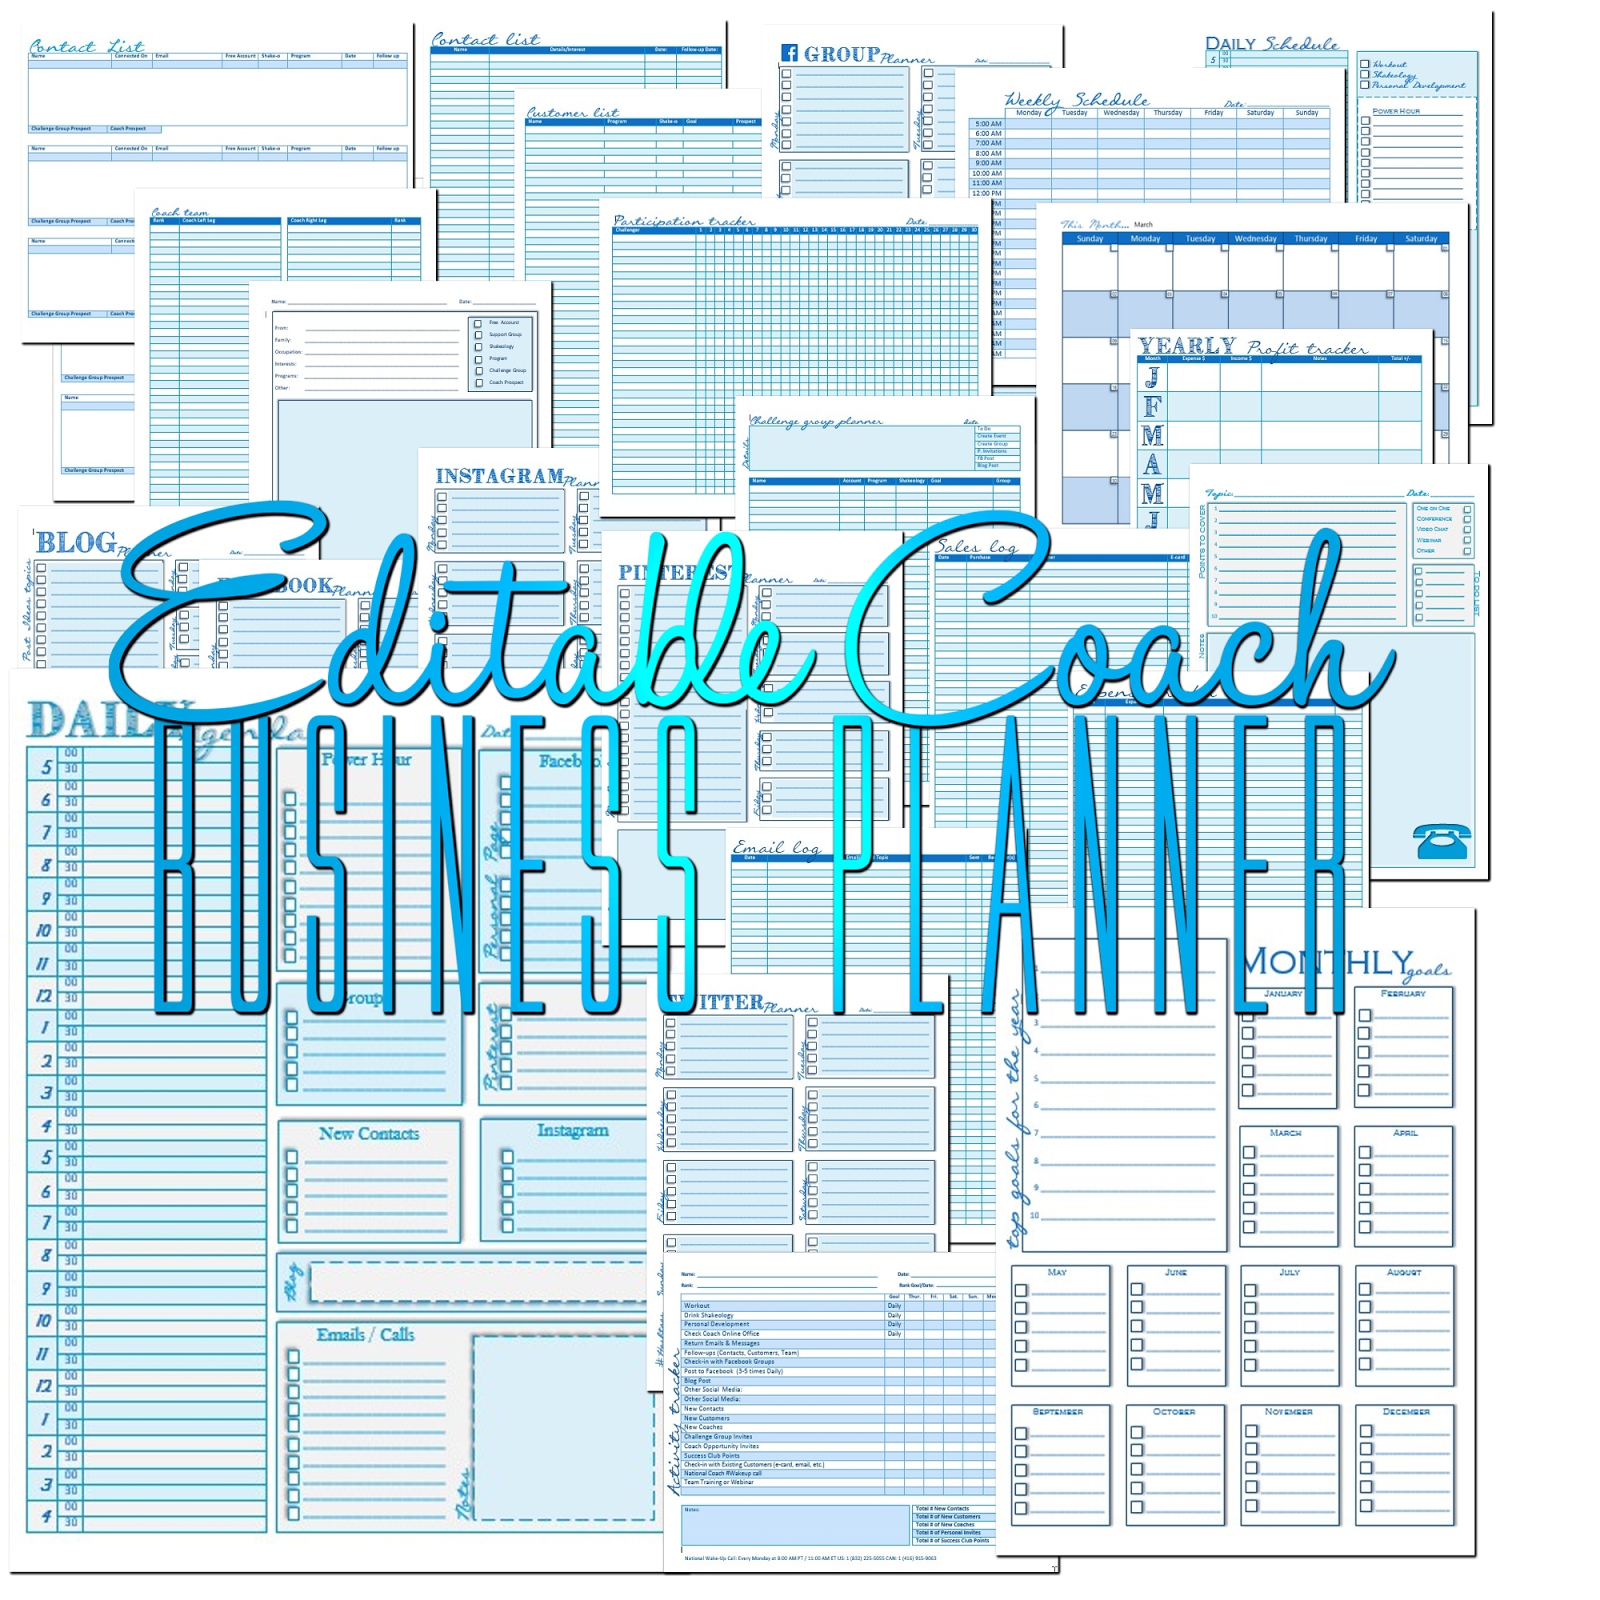 Edit Able Coach Business Planner With Images